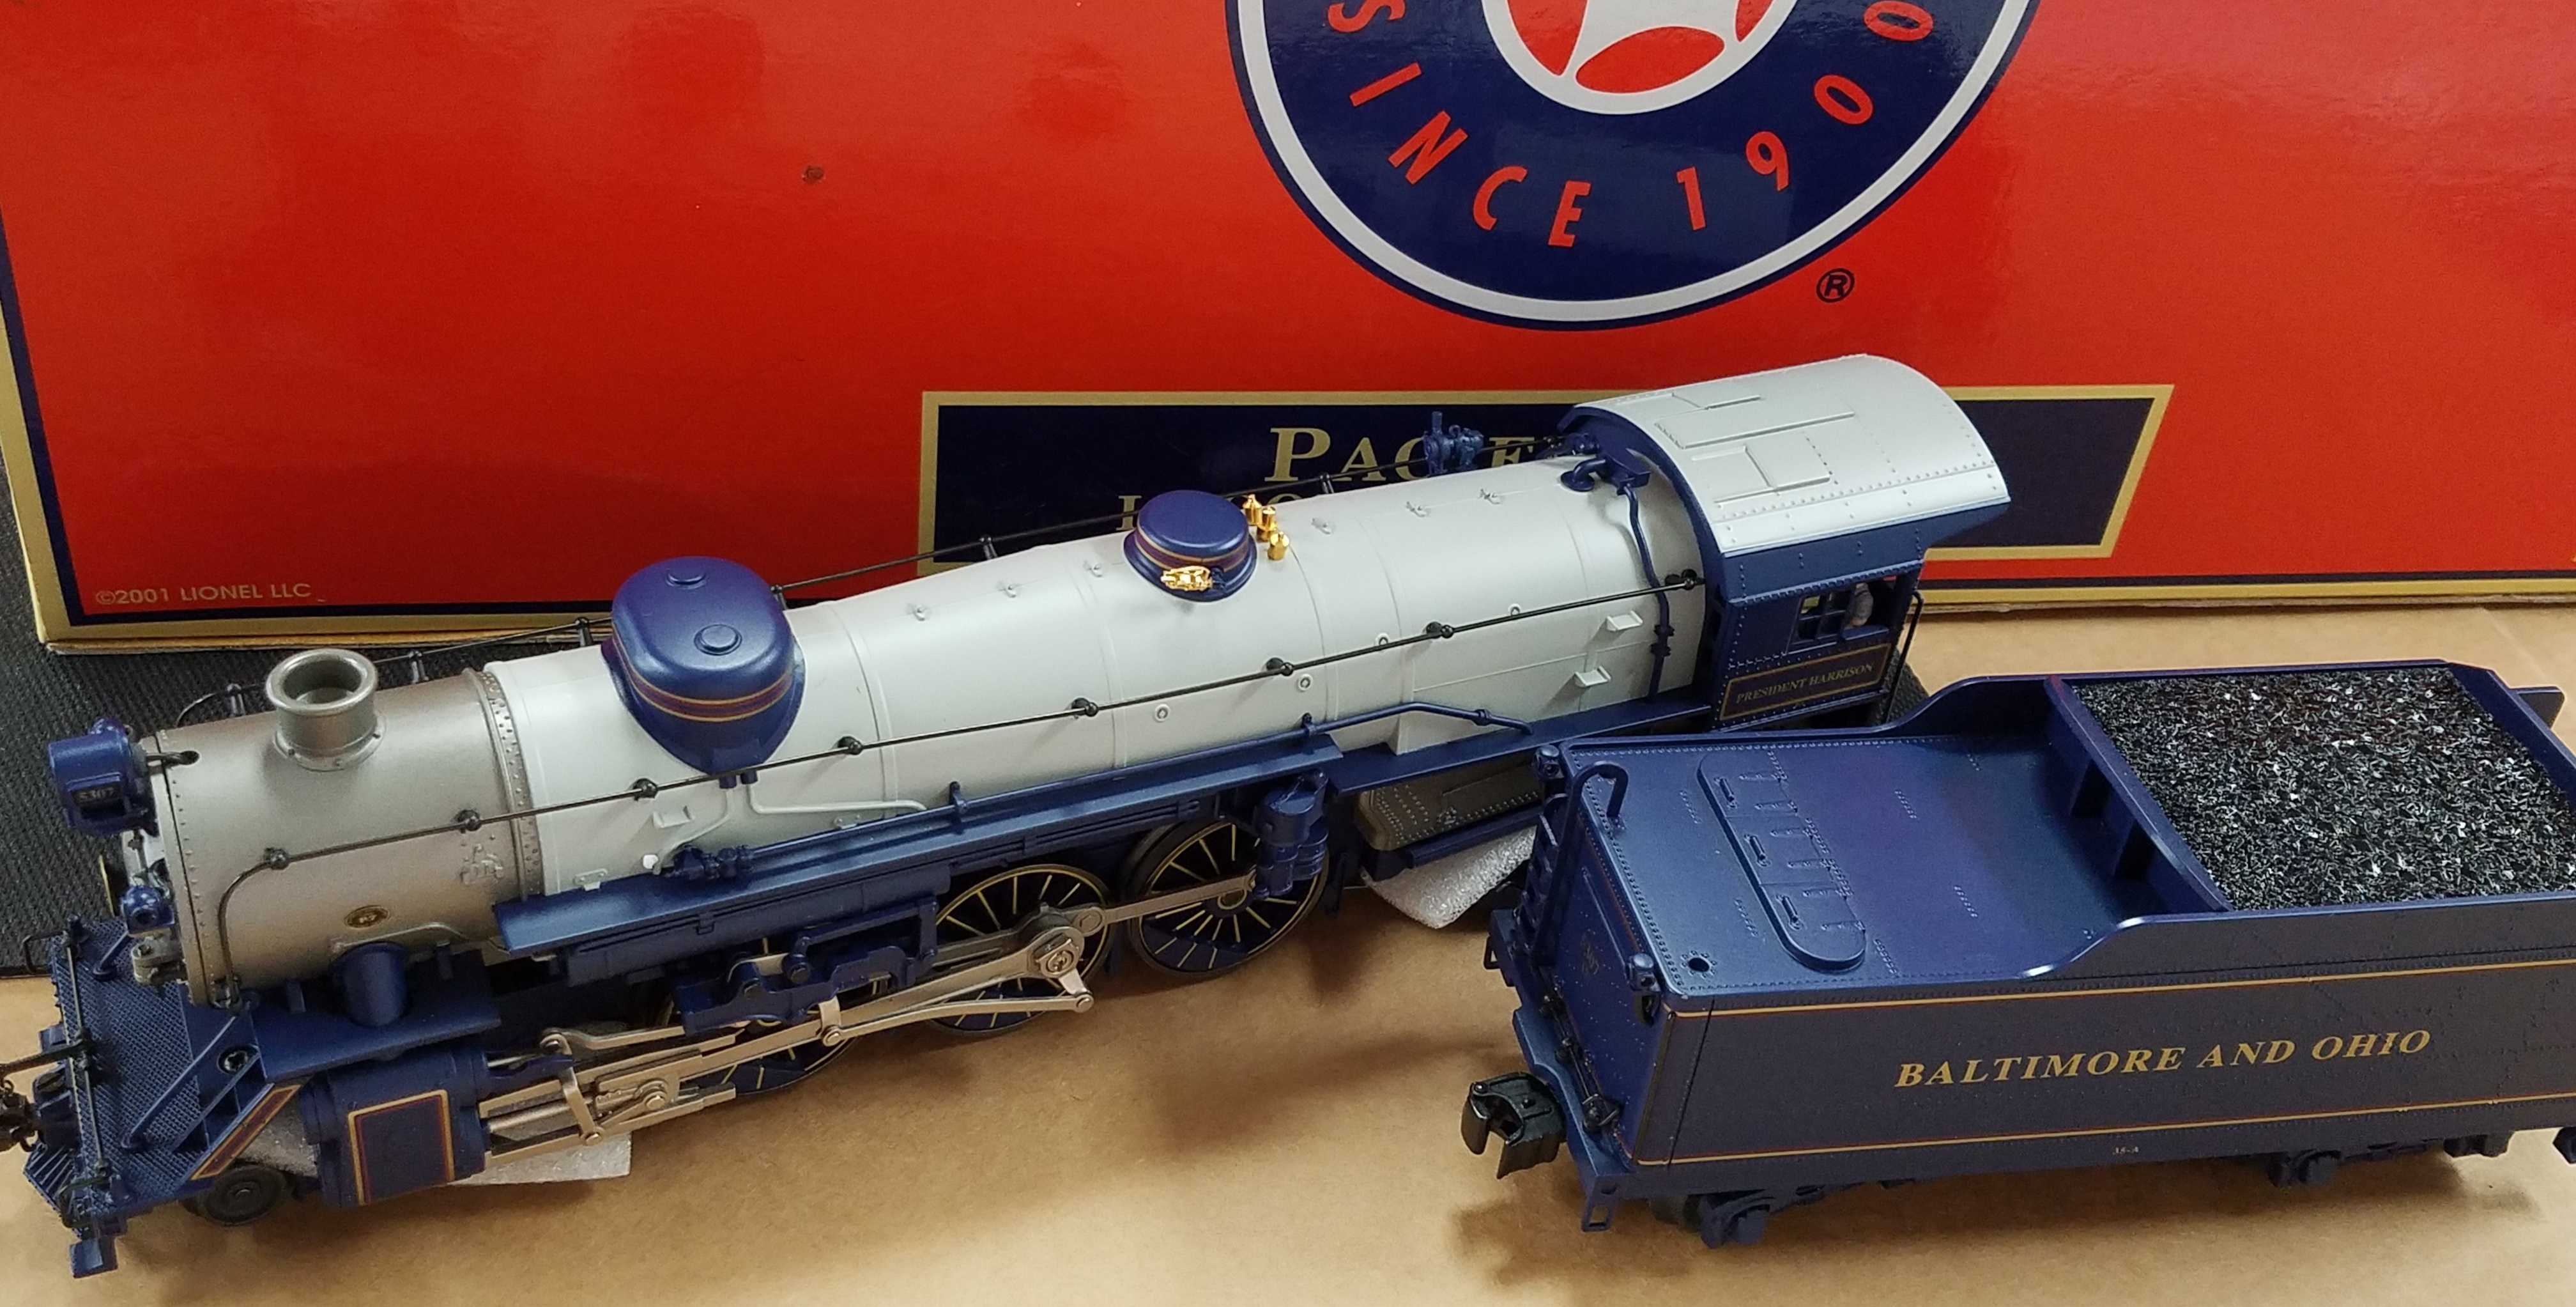 DYSSEY SYSTEM - 6-28066 -LOCOMOTIVE AND TENDER